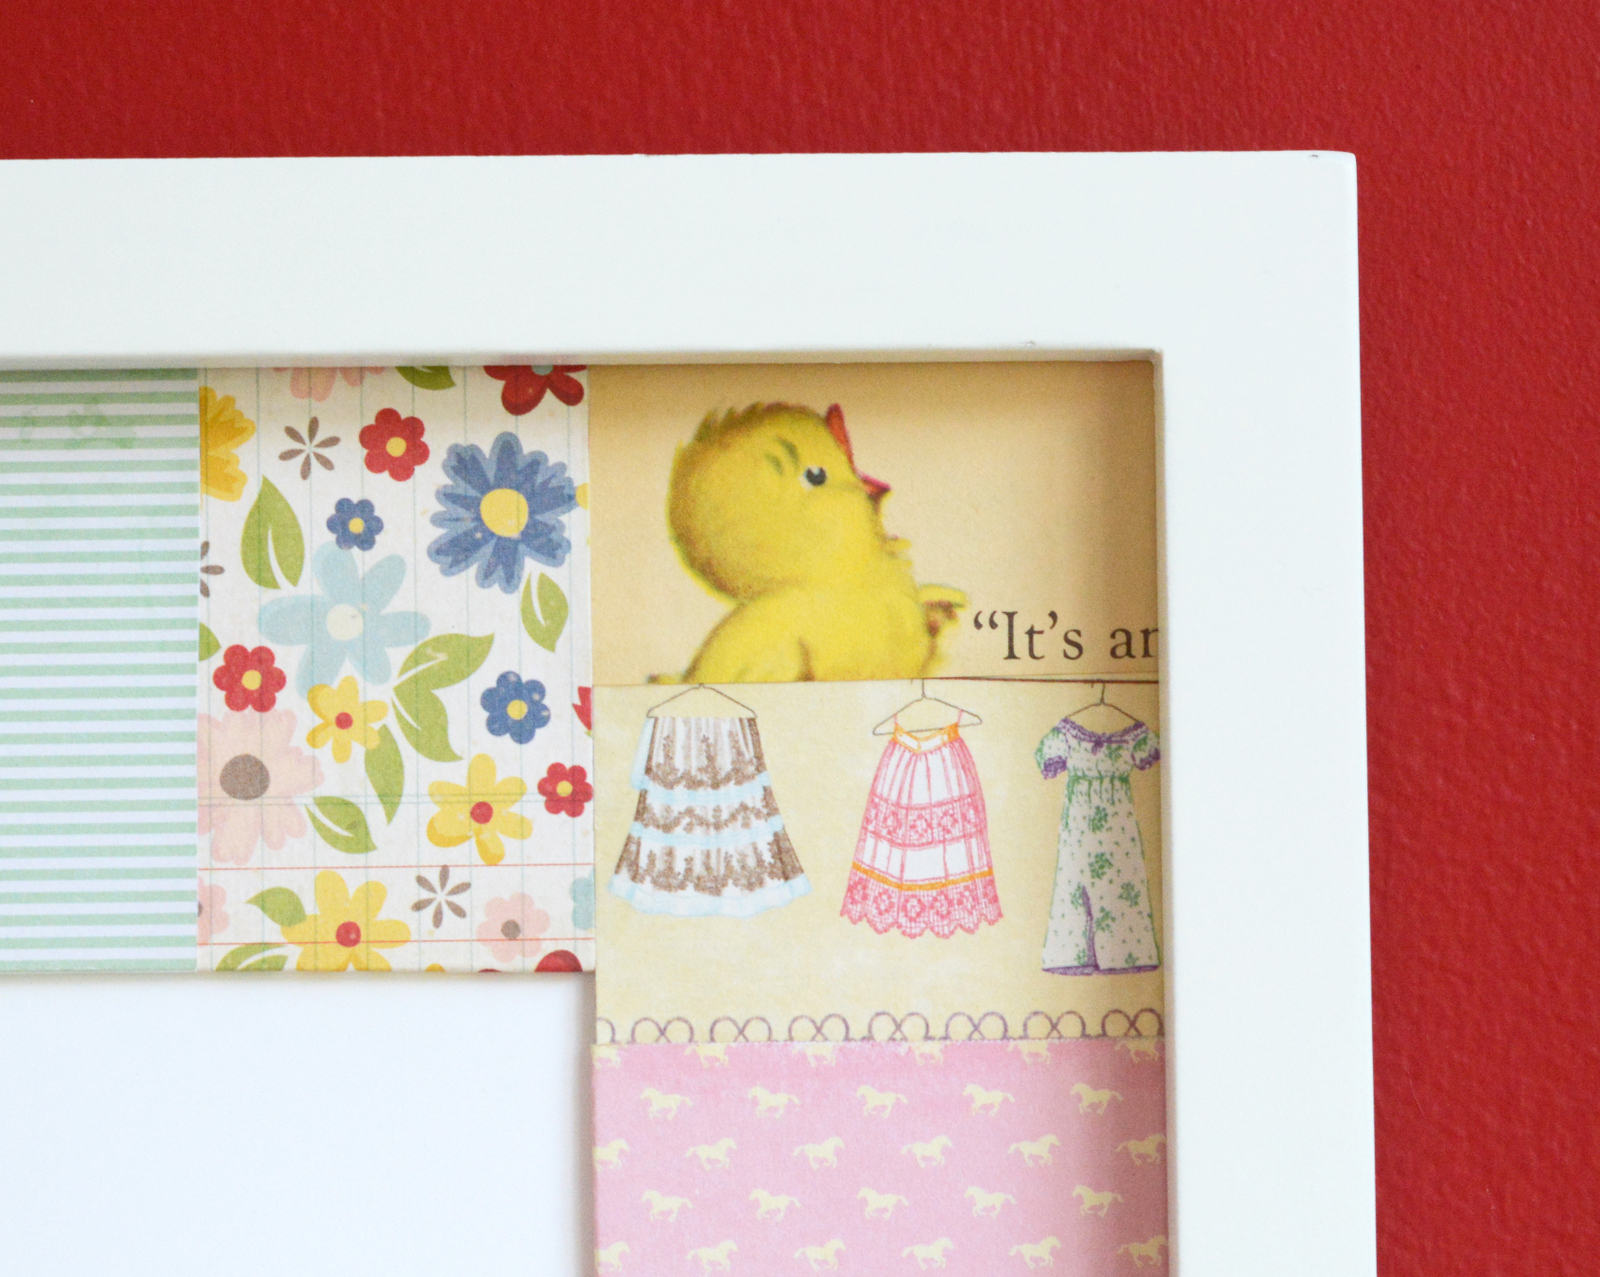 Patchwork mat framed wall decor - Mod Podge Rocks